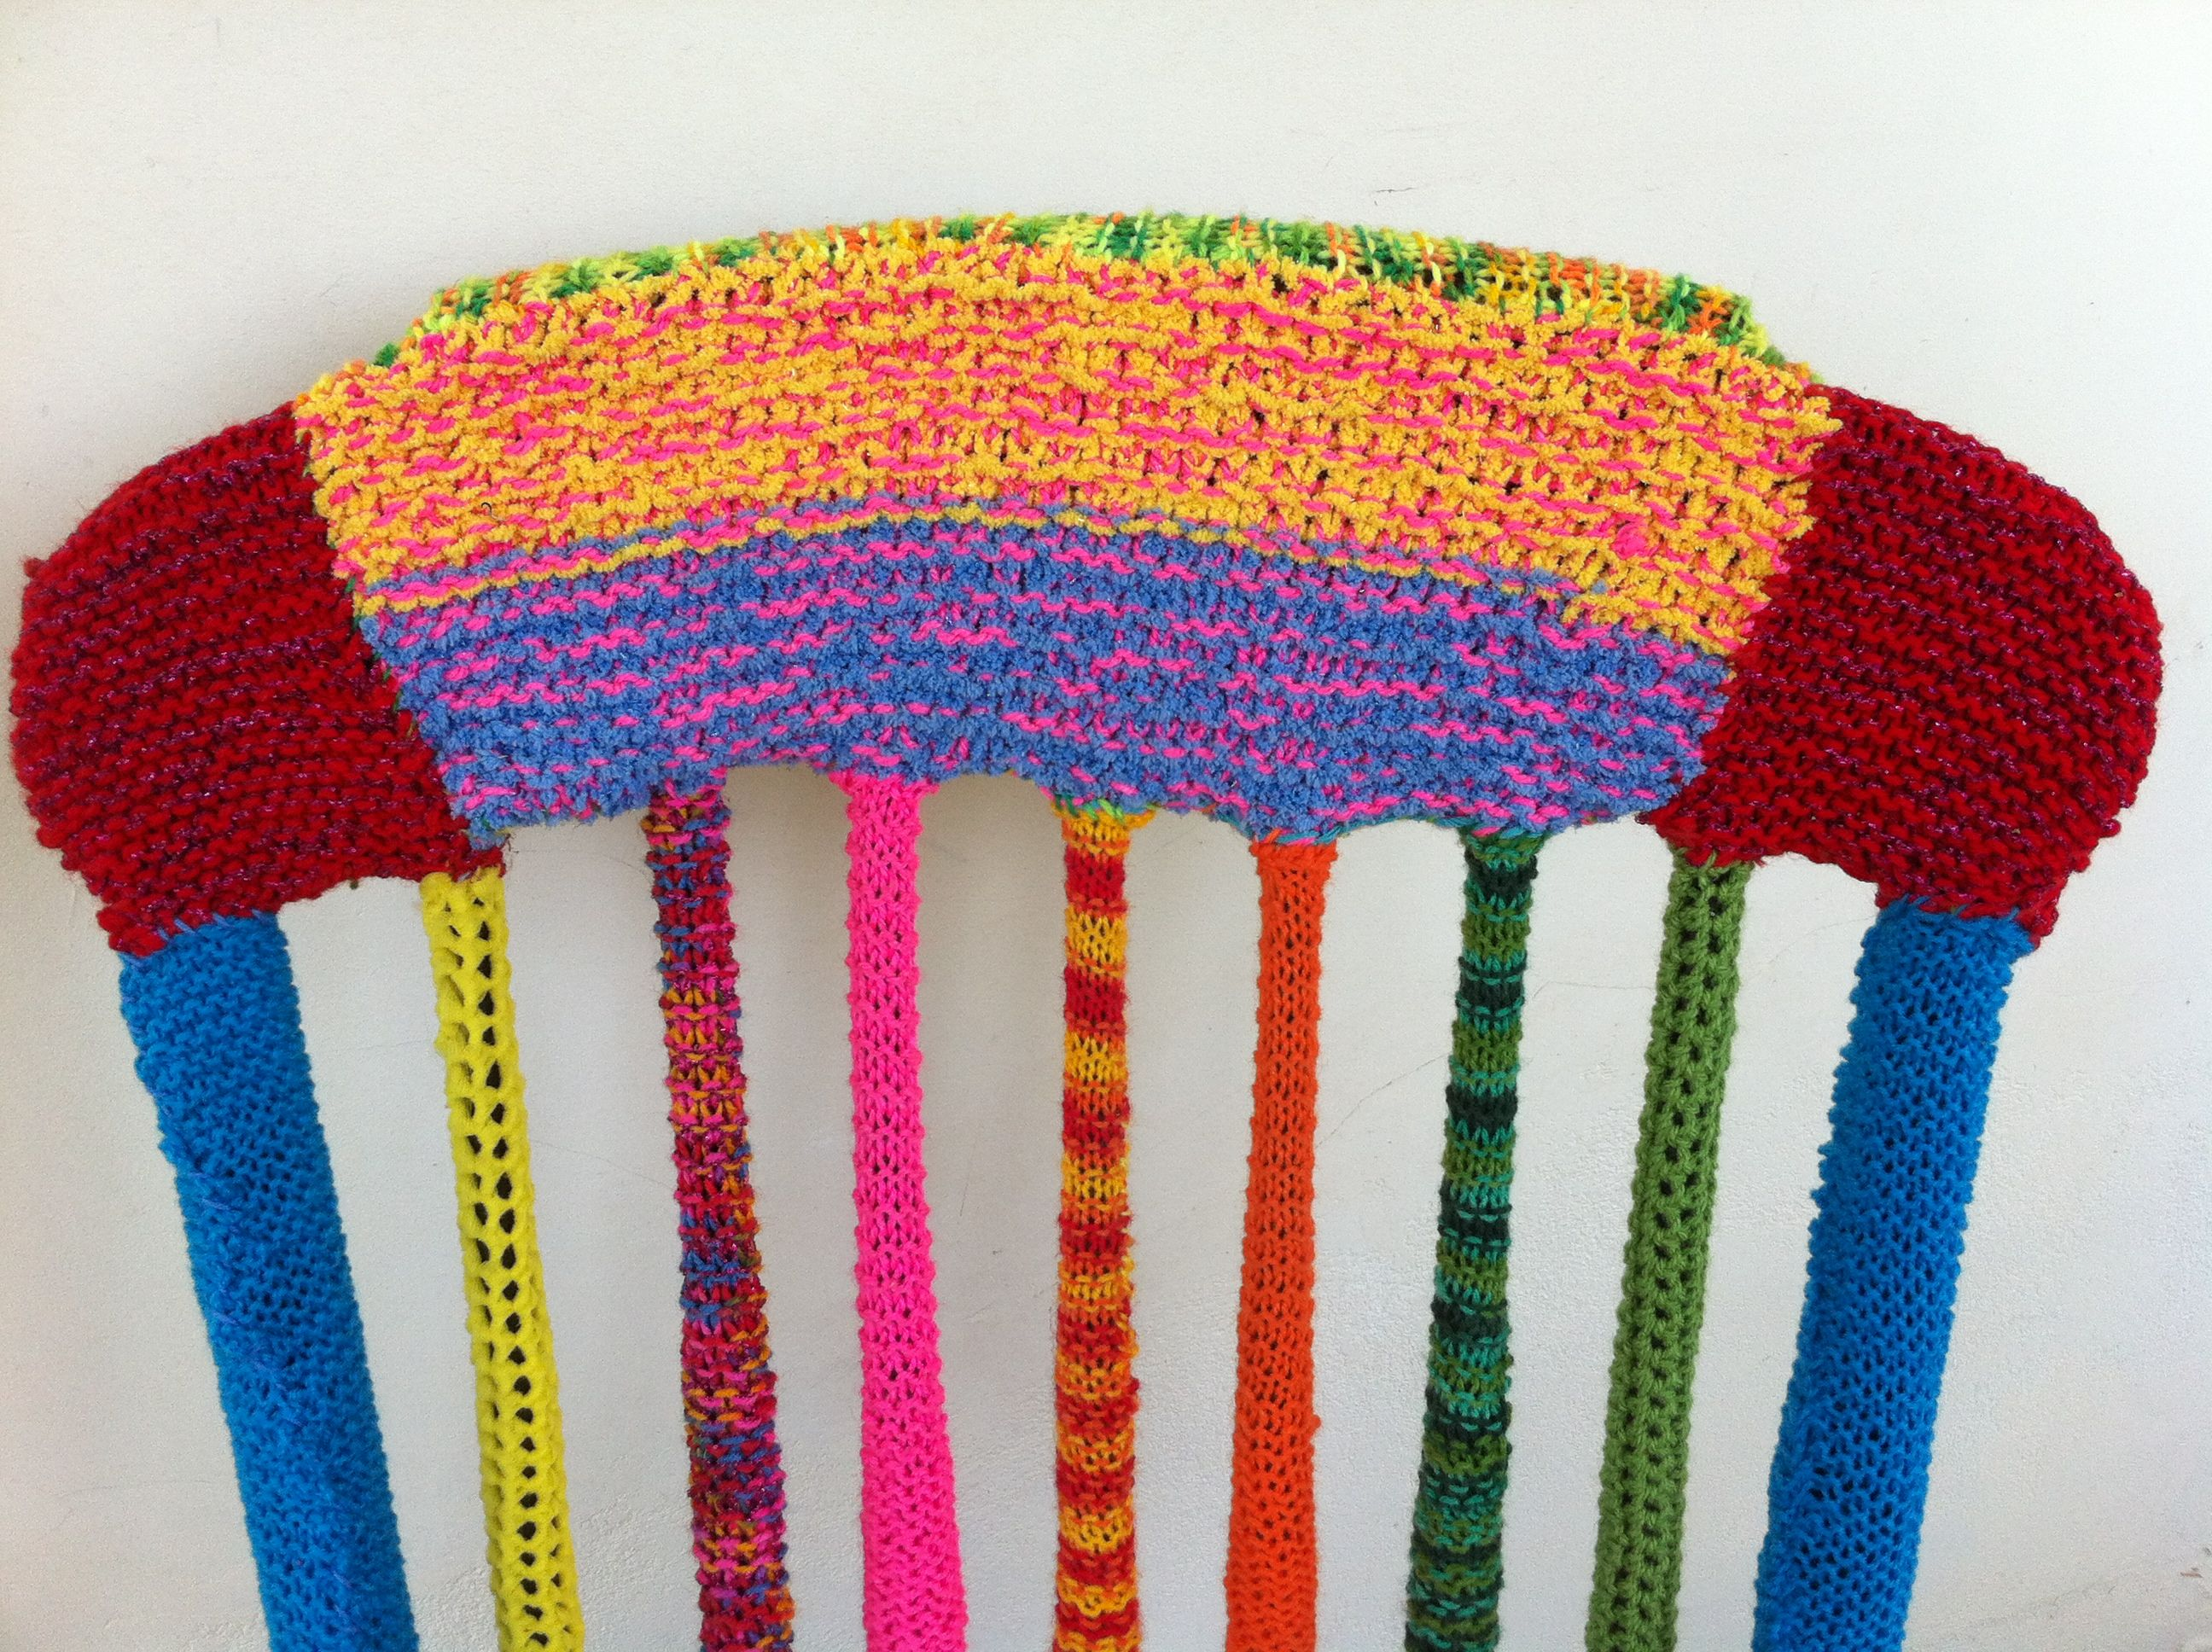 rocking chair | YARN BOMBING